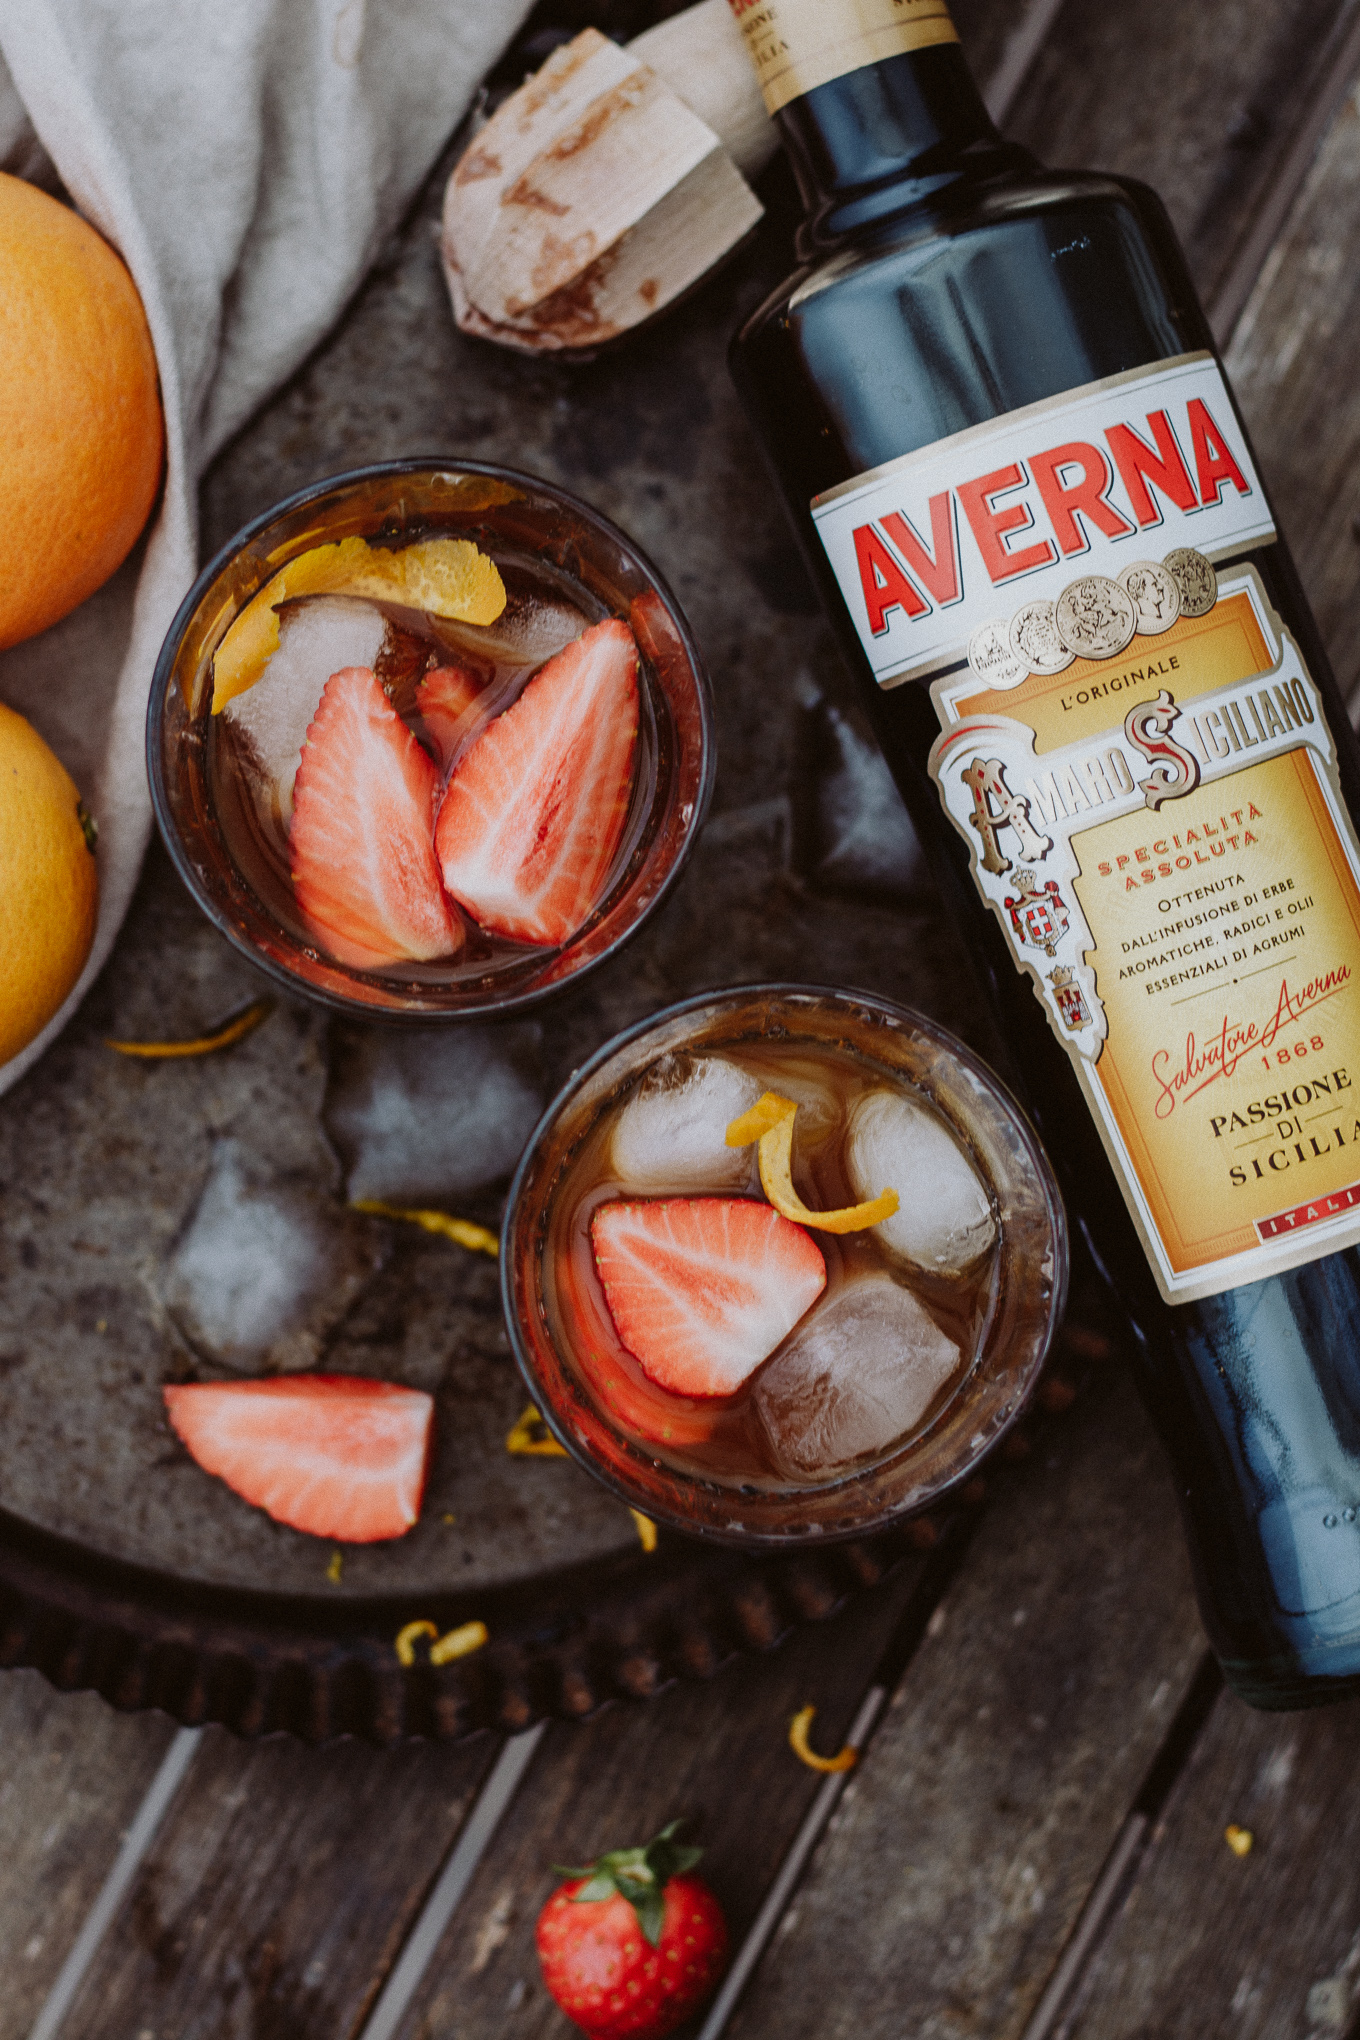 The Daily Dose Averna Strawberry